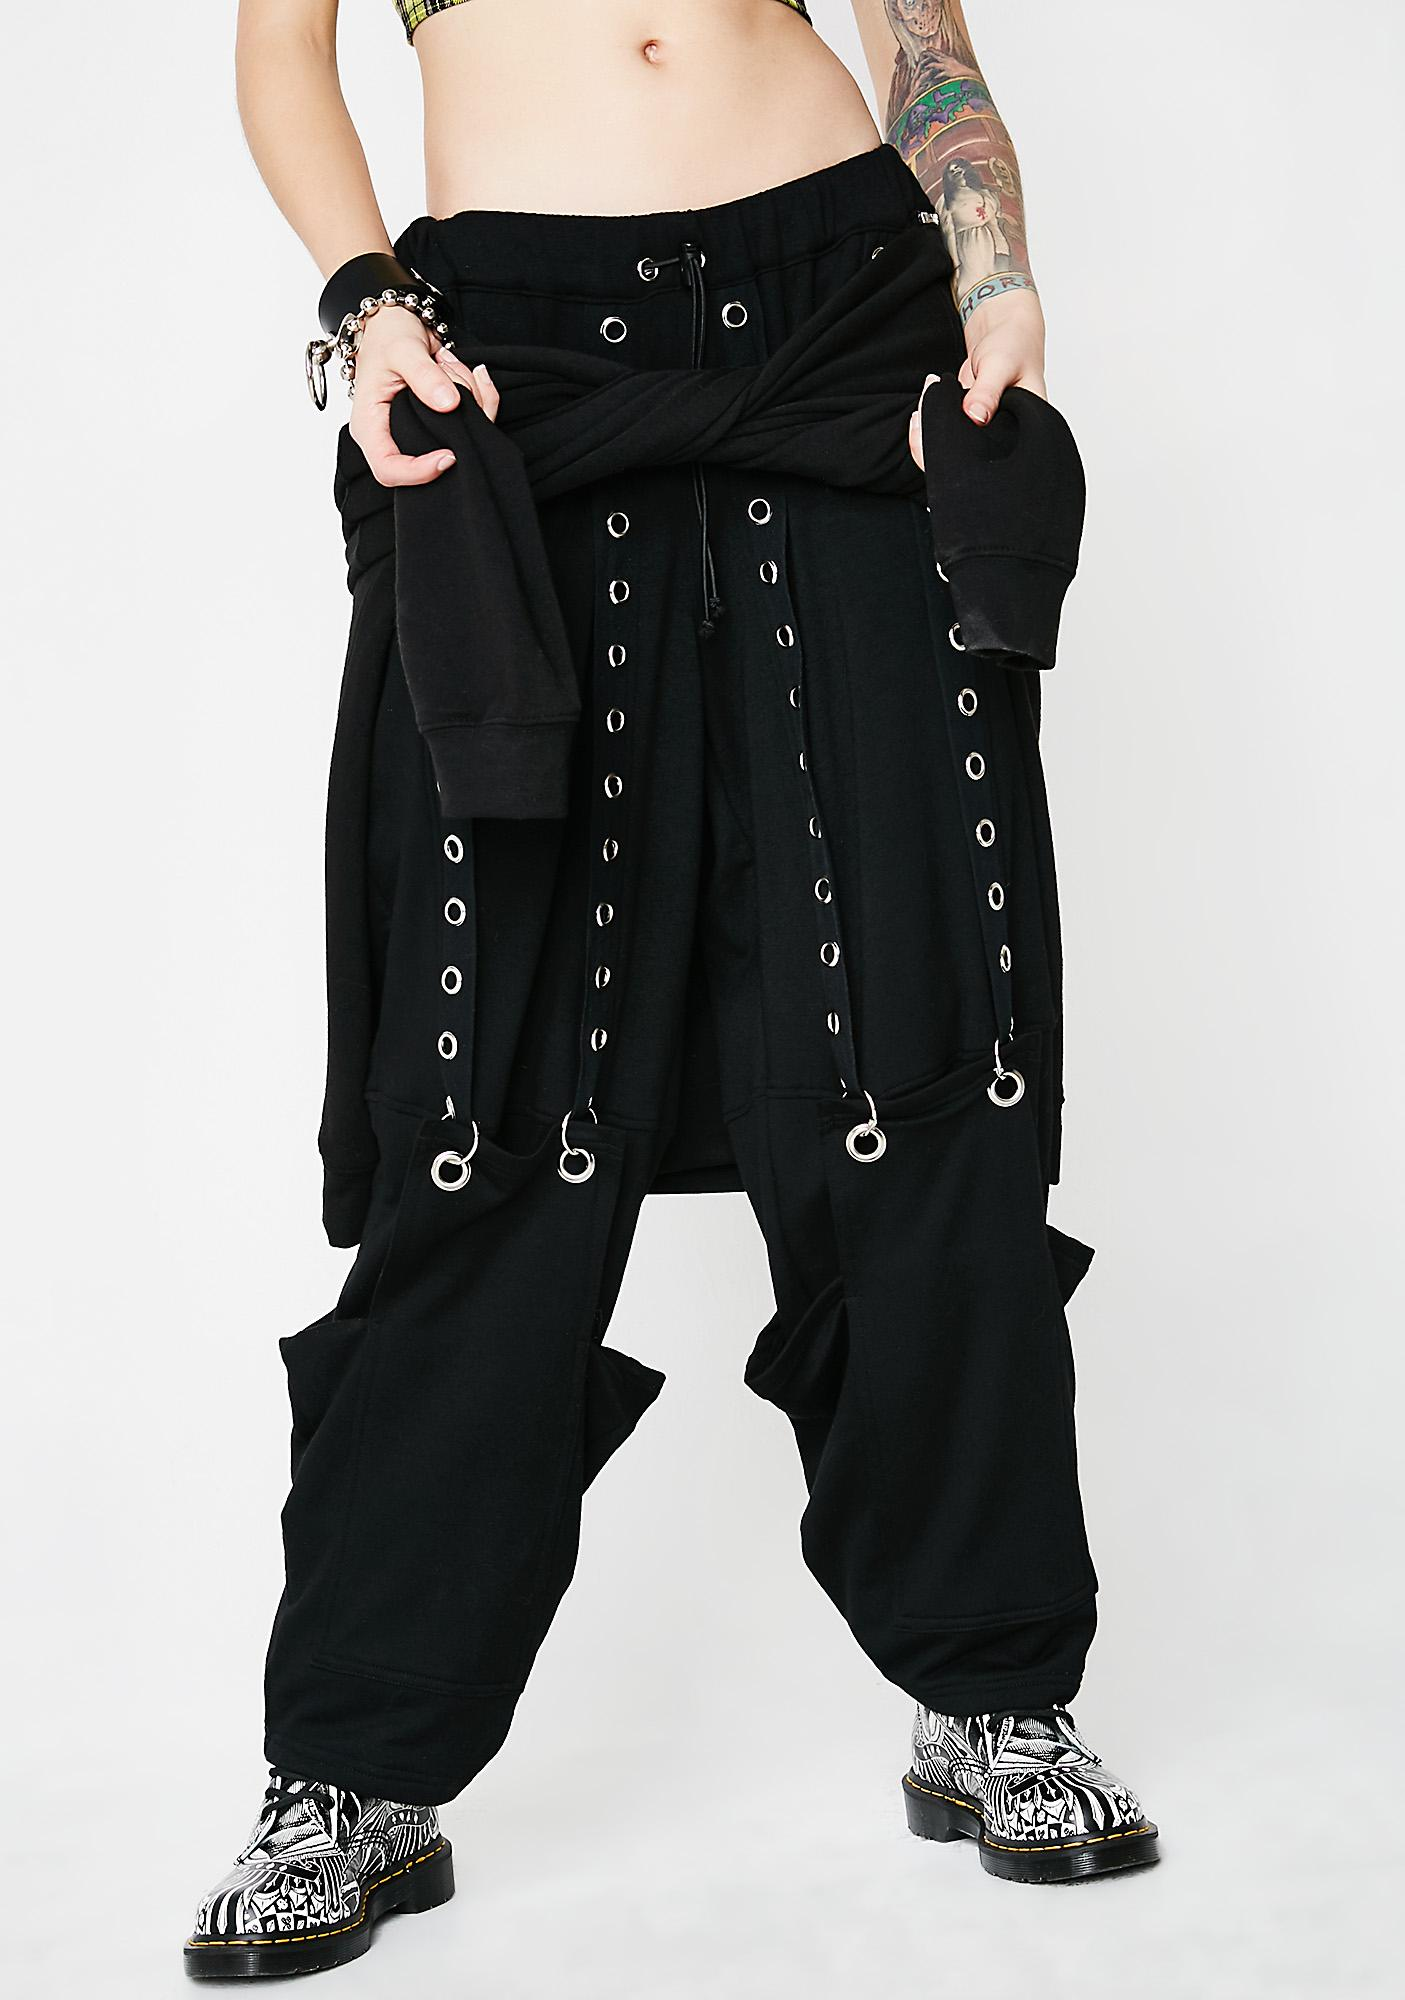 Whatever 21 Suspended Eyelet Sweatpants